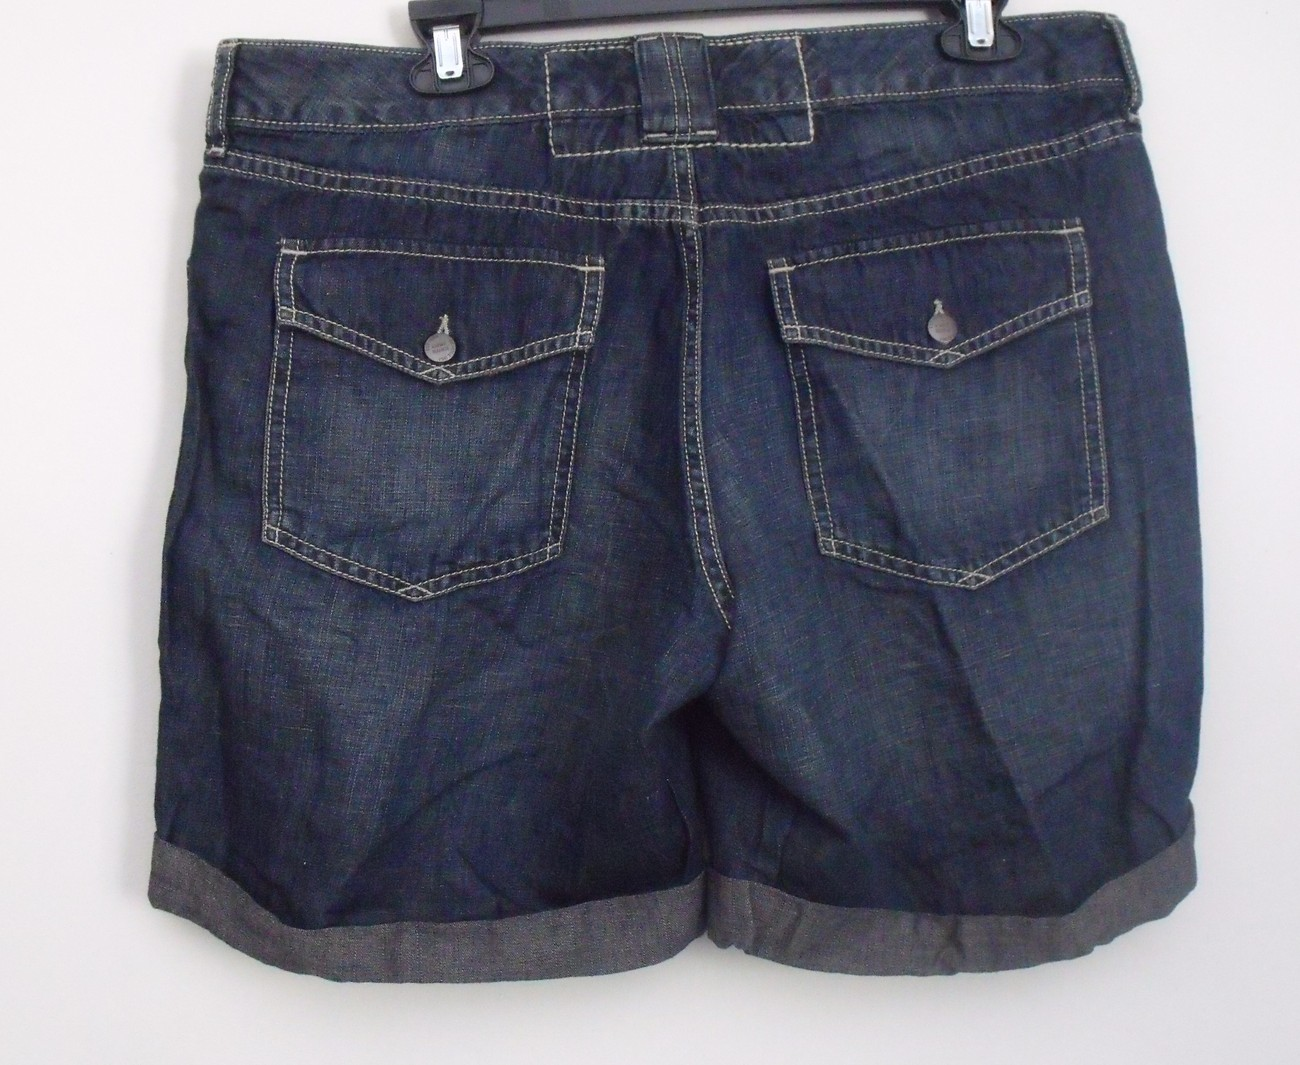 Womens Eddie Bauer Dark Blue Jean Shorts Size 12